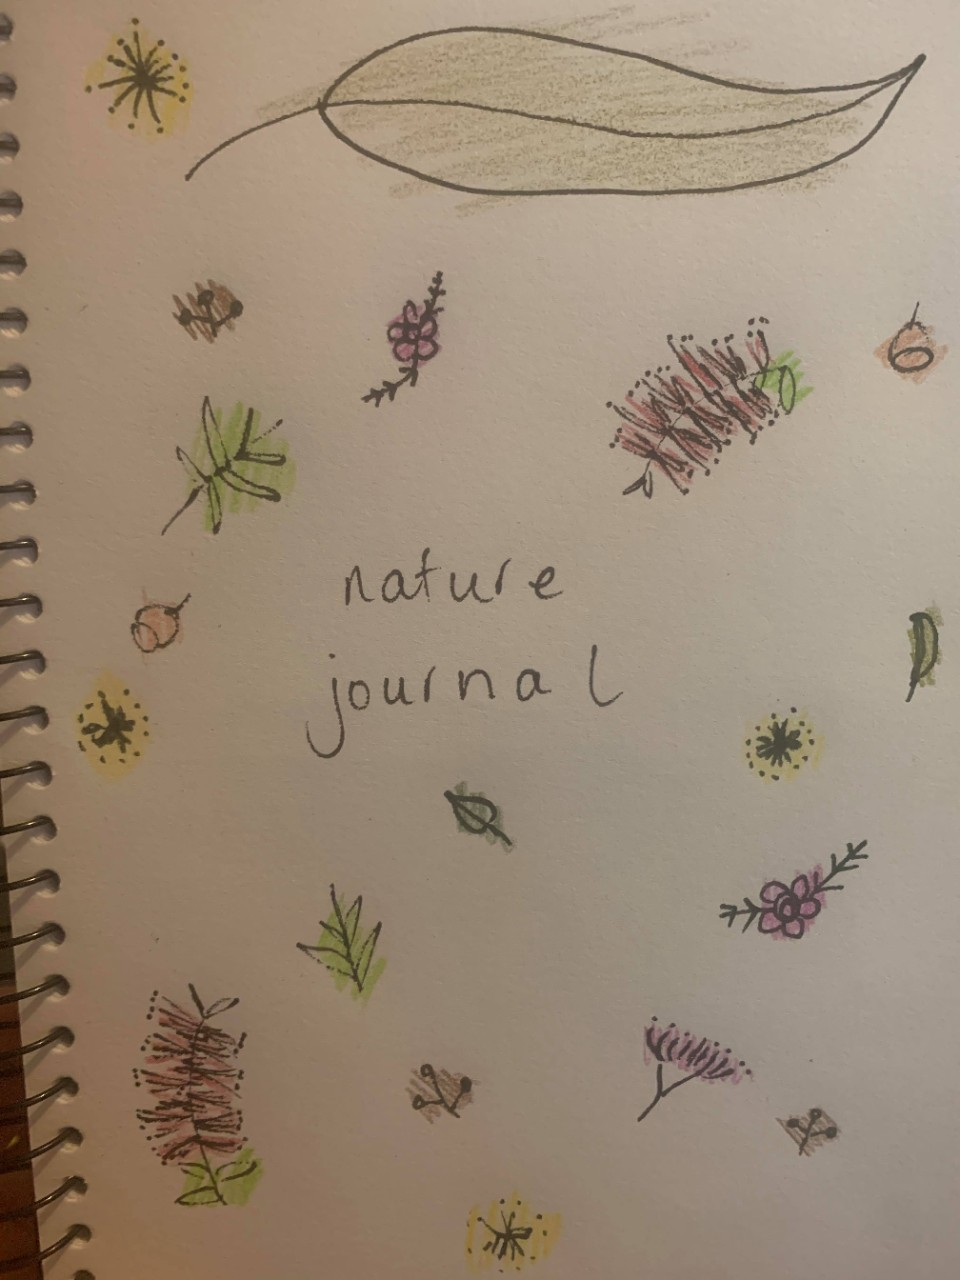 Title page of a nature journal, with small hand-sketched flowers on a page